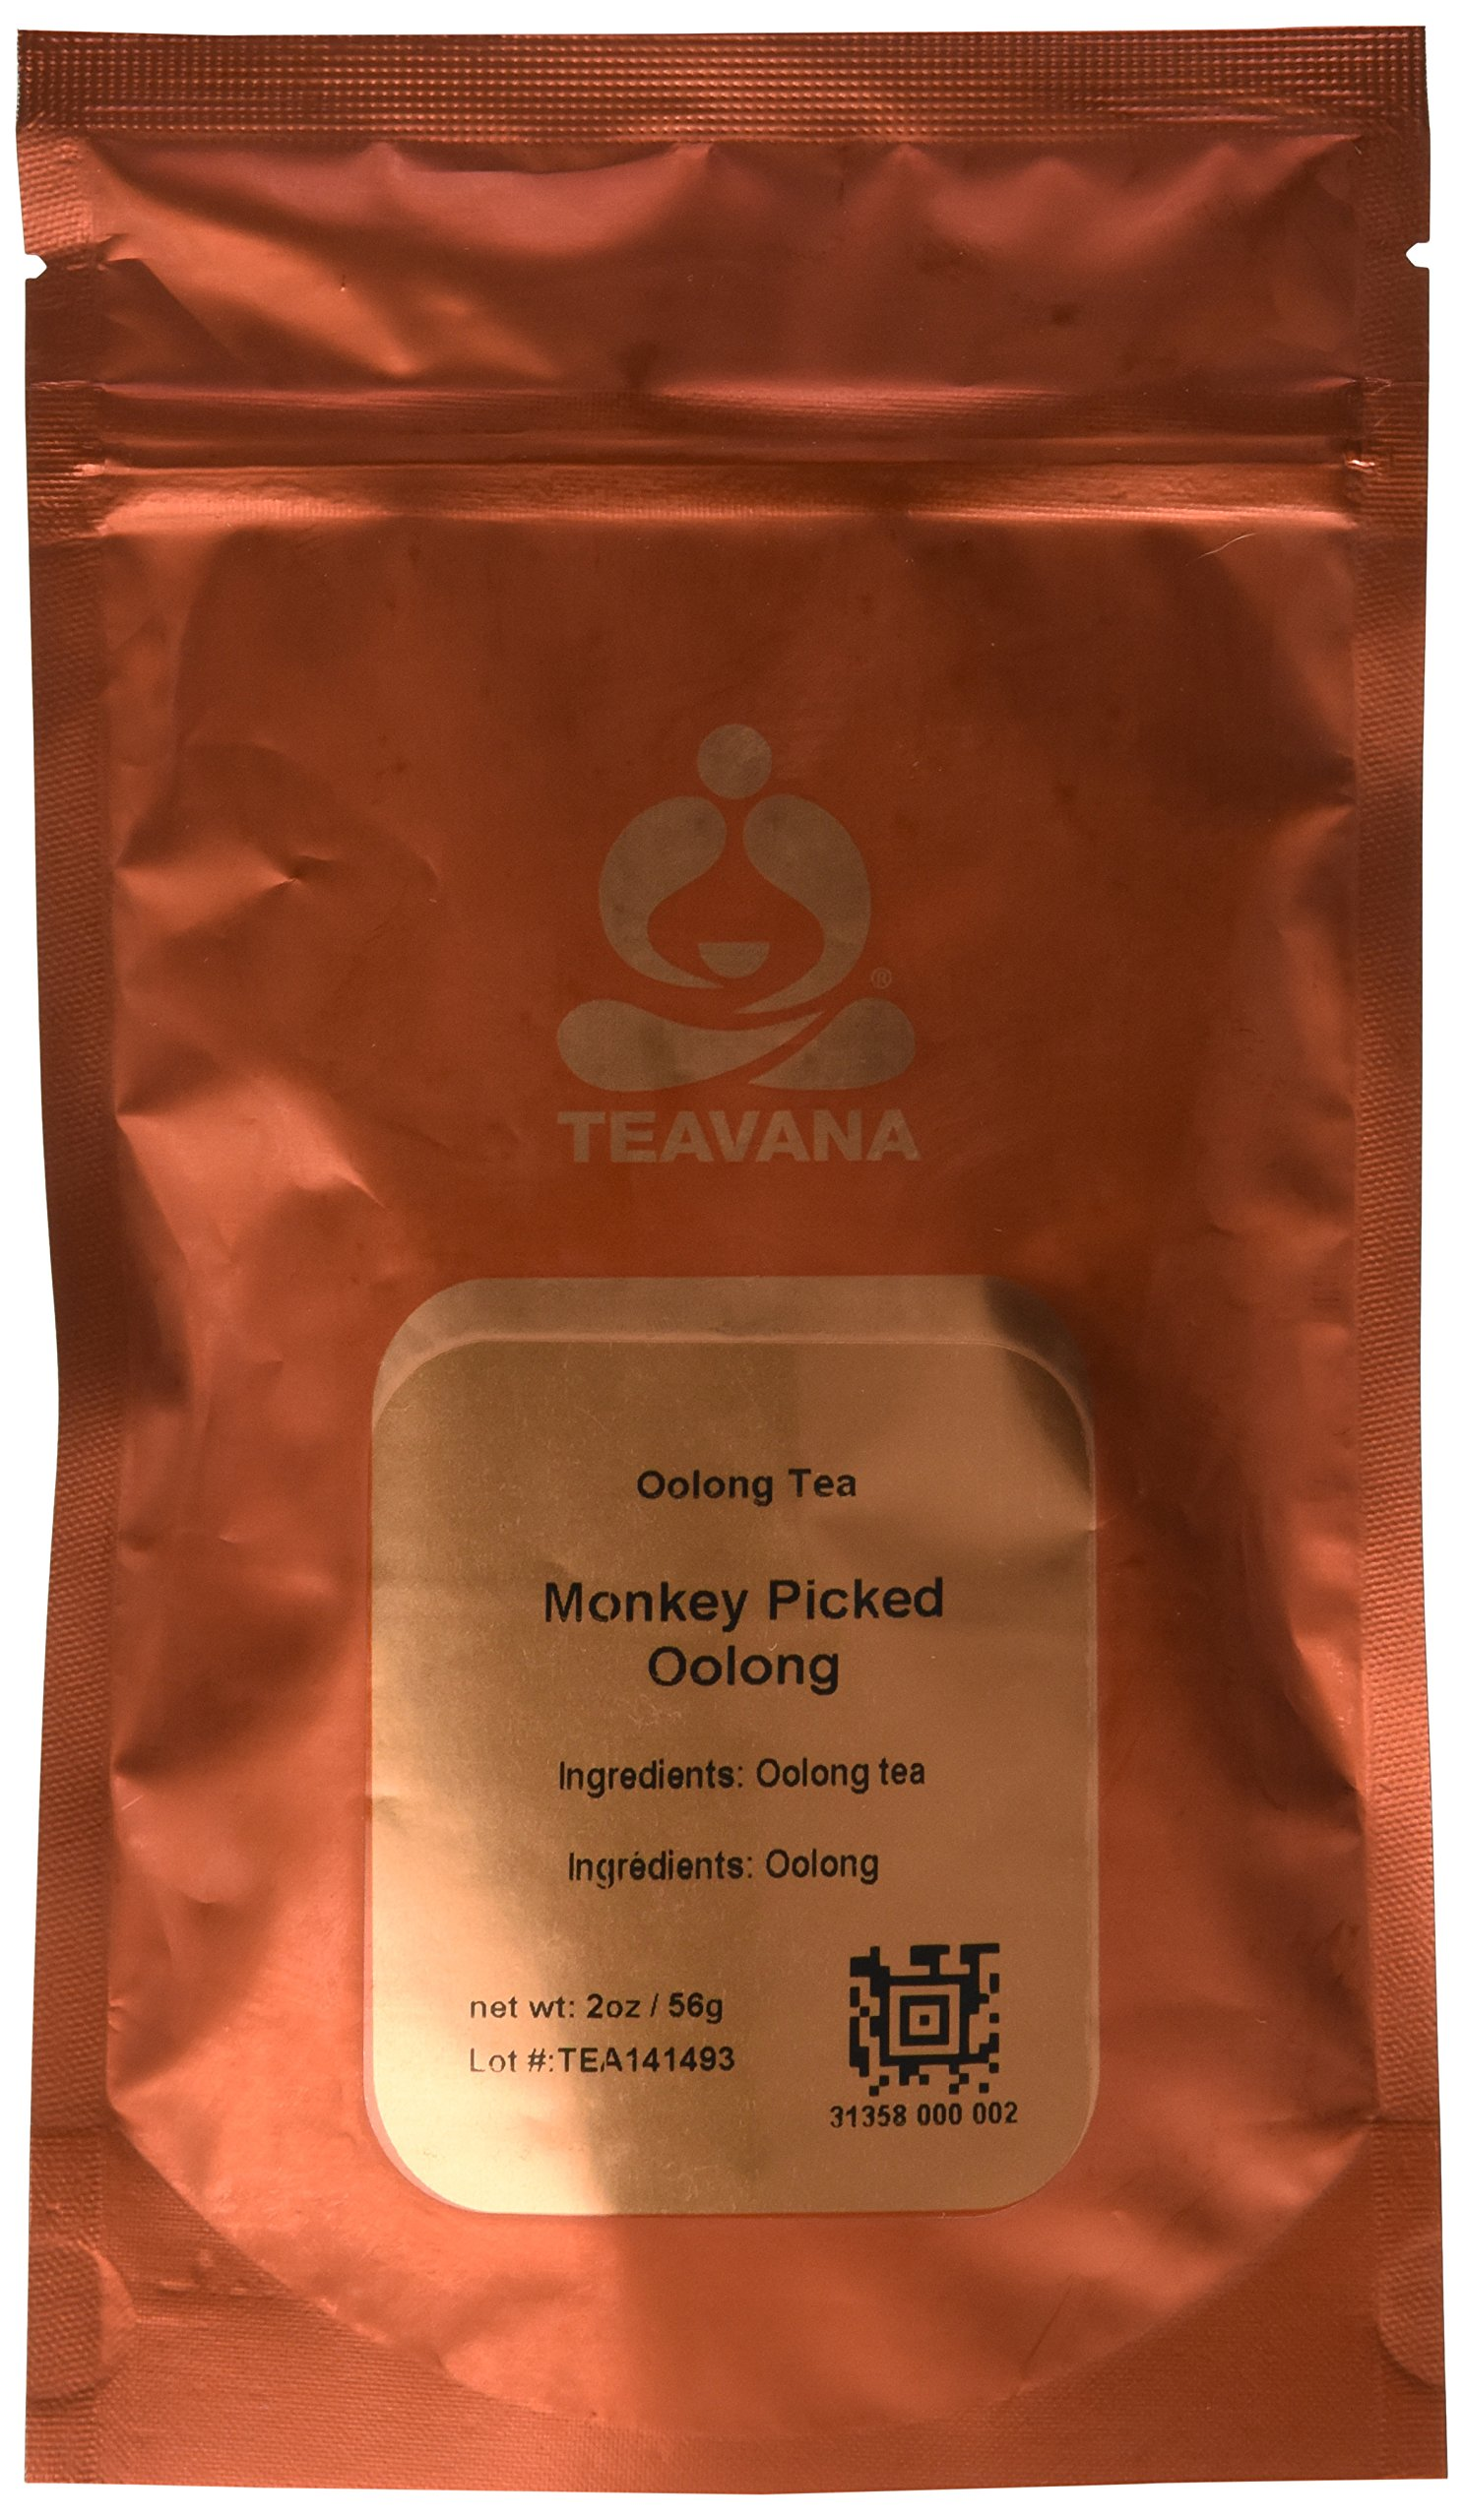 Teavana Monkey Picked Loose-Leaf Oolong Tea (2oz Bag) by Teavana